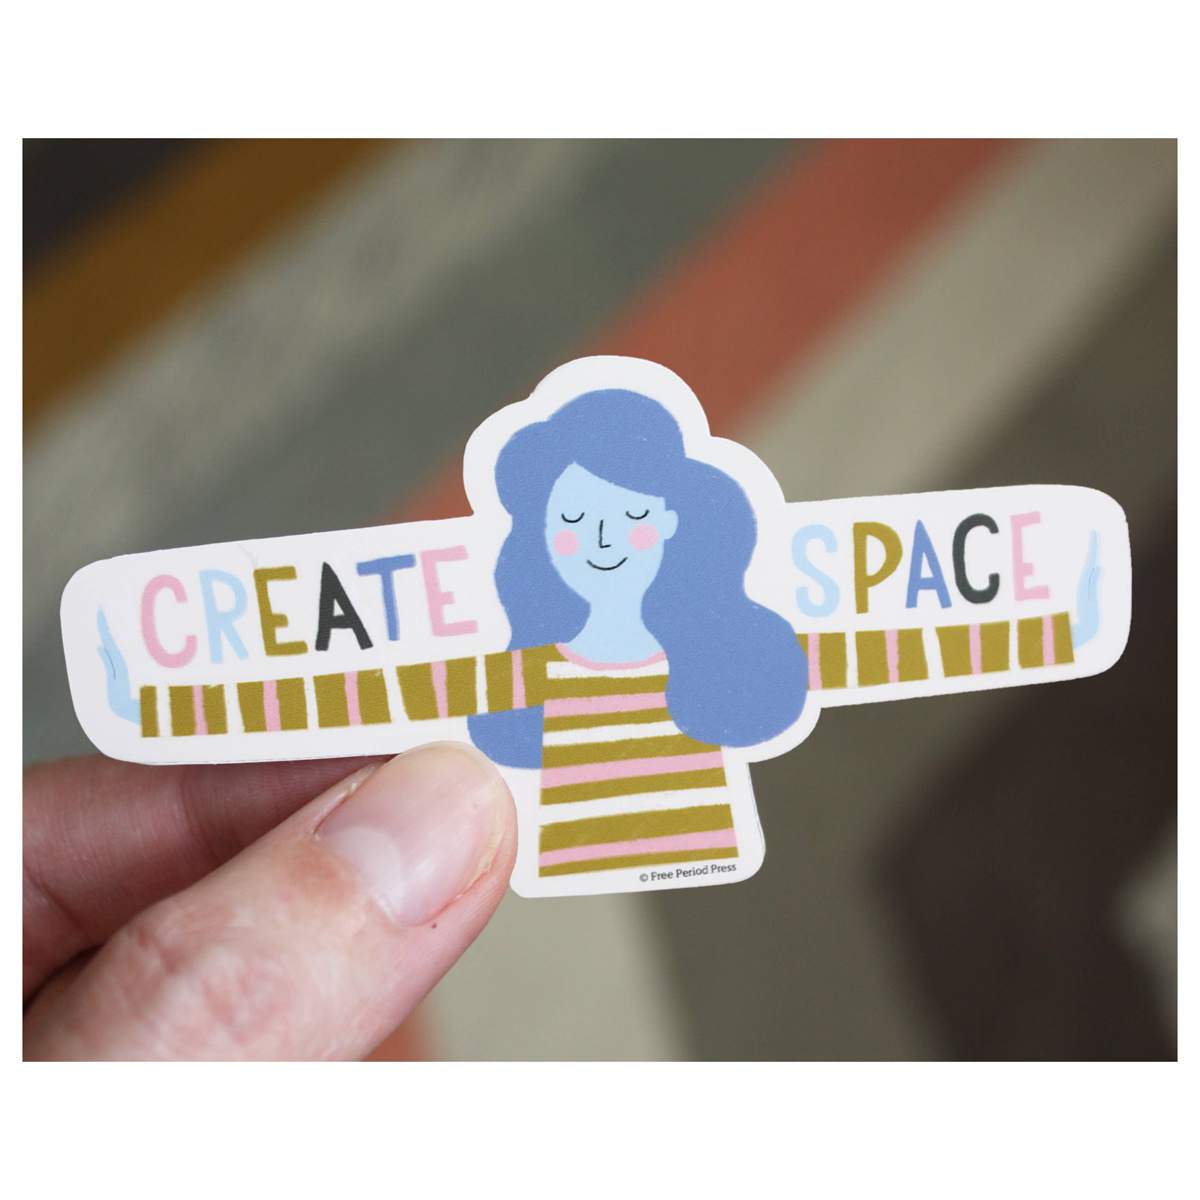 Free Period Press - FPP Create Space Vinyl Sticker